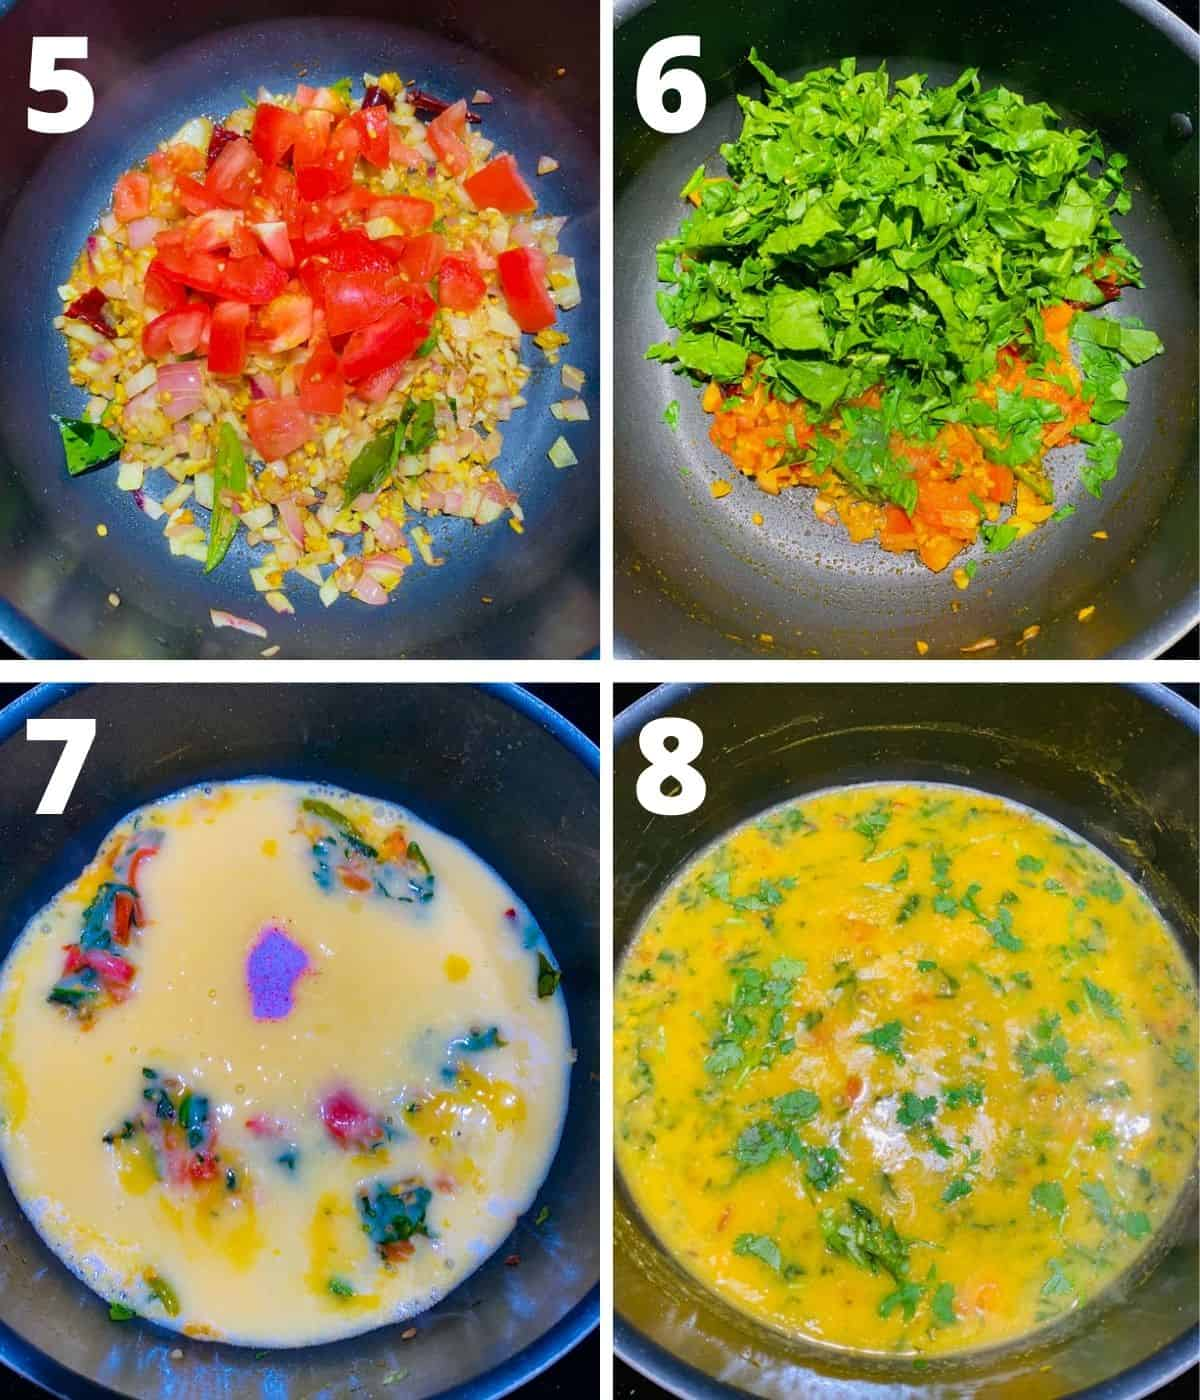 Step by step images collage of making spinach dal. This collage shows steps from adding tomatoes until adding the cilantro and lemon juice